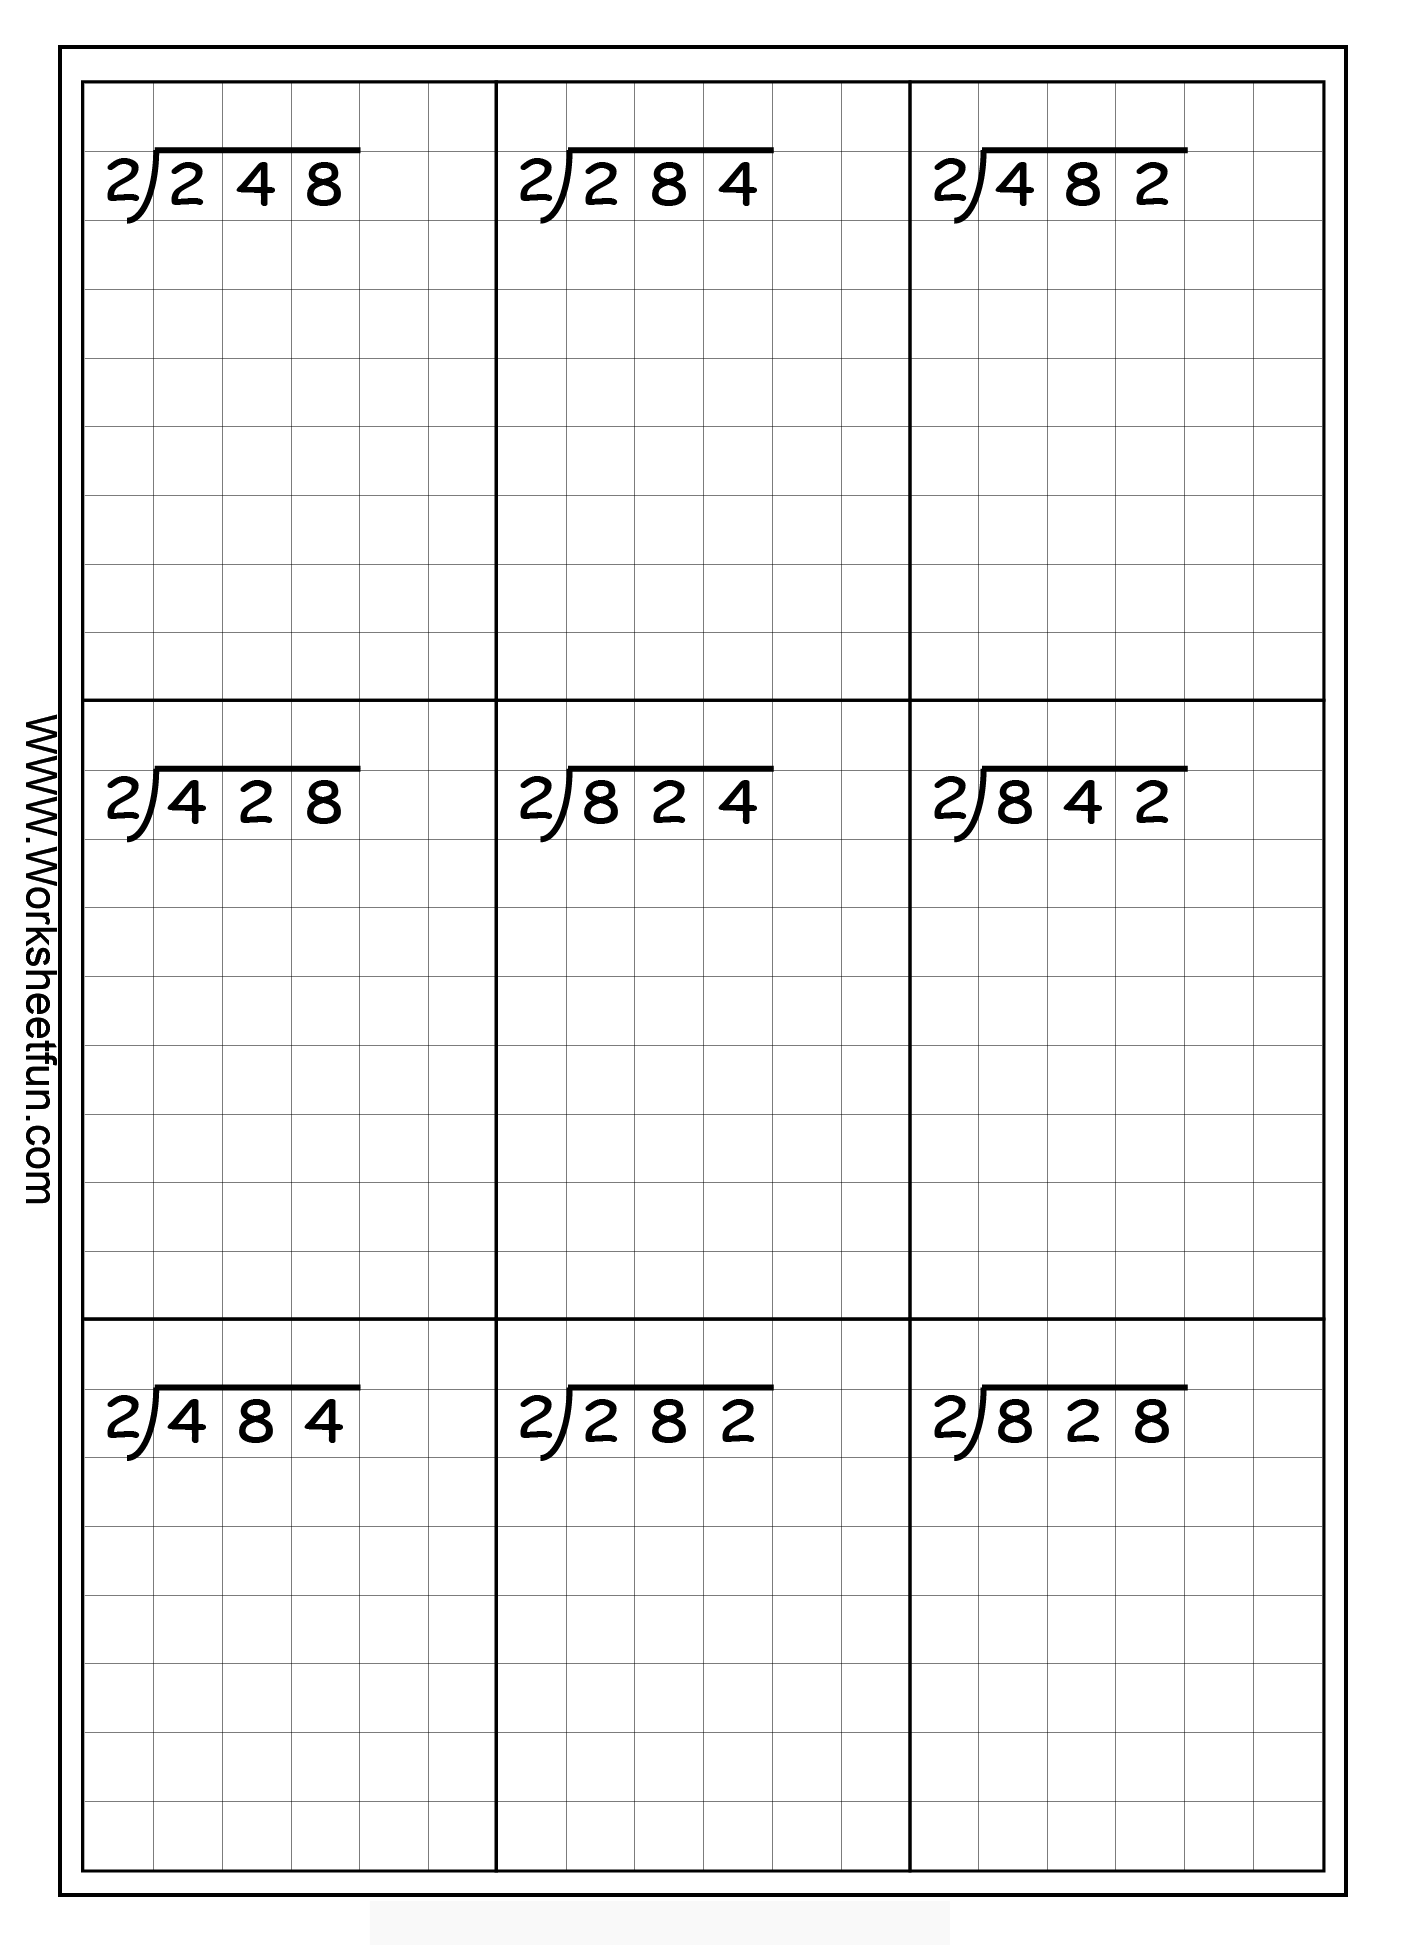 Worksheets Free Long Division Worksheets long division 3 digits by 1 digit no remainder 20 worksheets printable pint